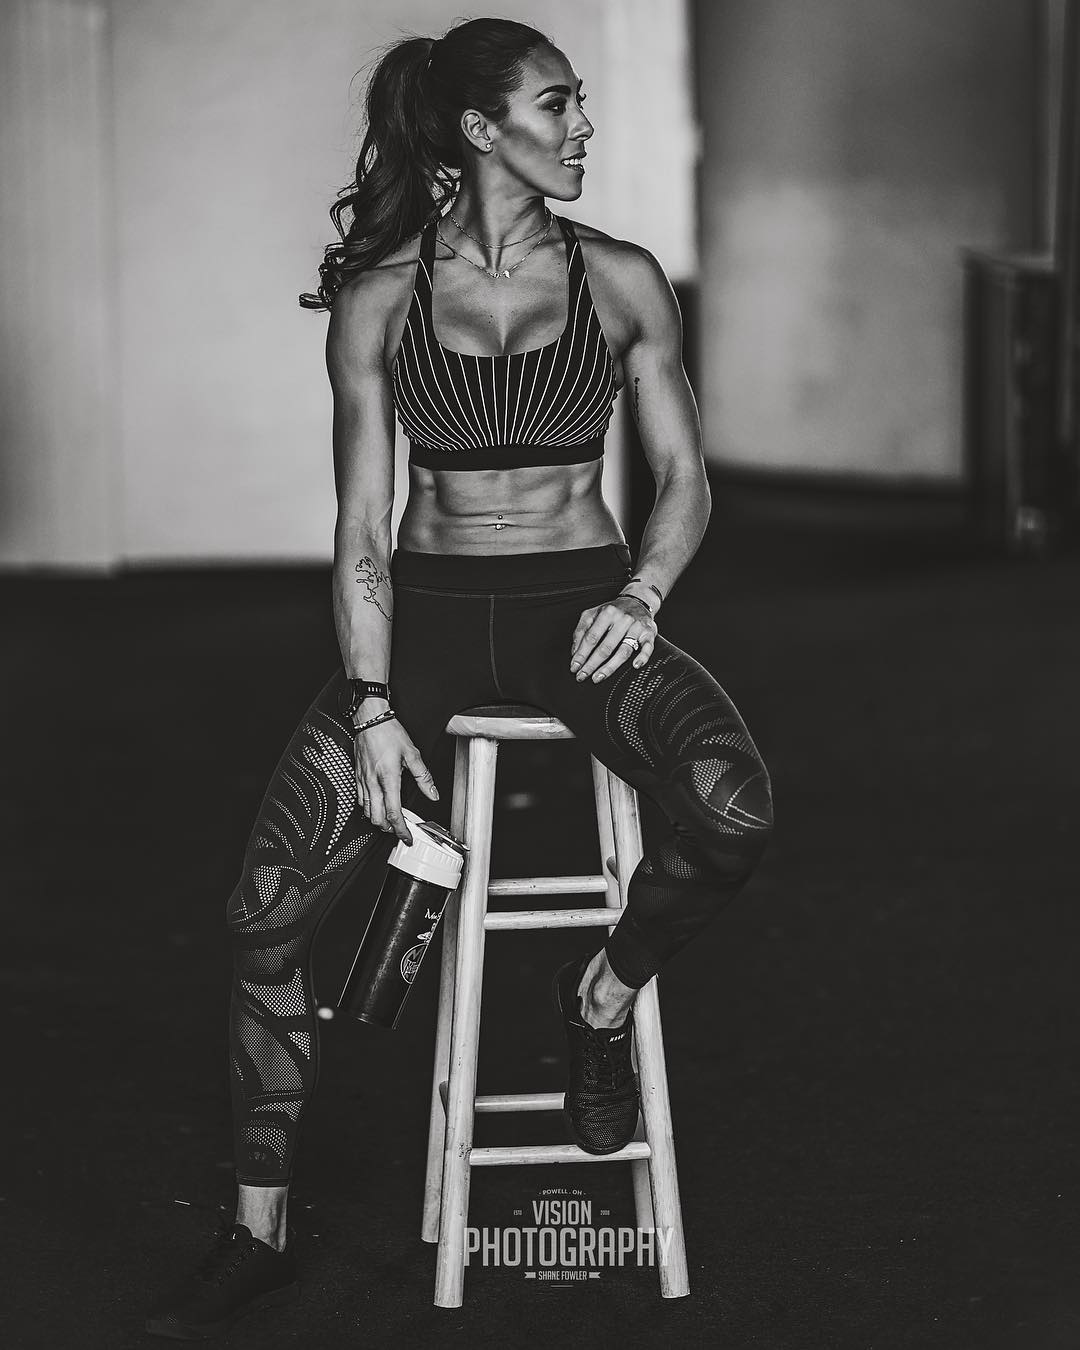 weight training weight loss Monster Monday At-Home HIIT